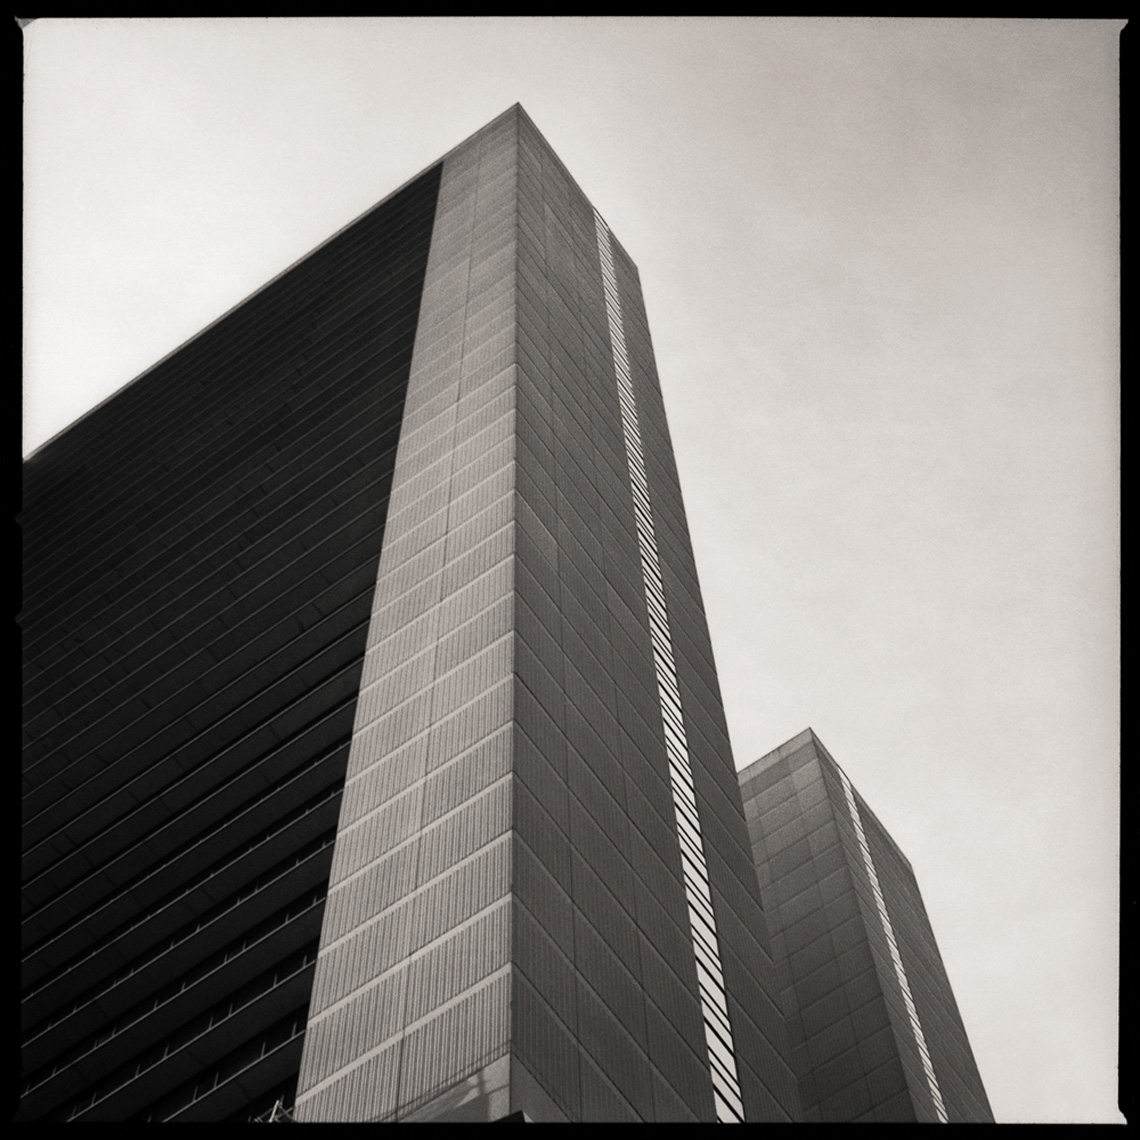 Sean Perry Photographs • The Marriott Marquis, from the series Monolith